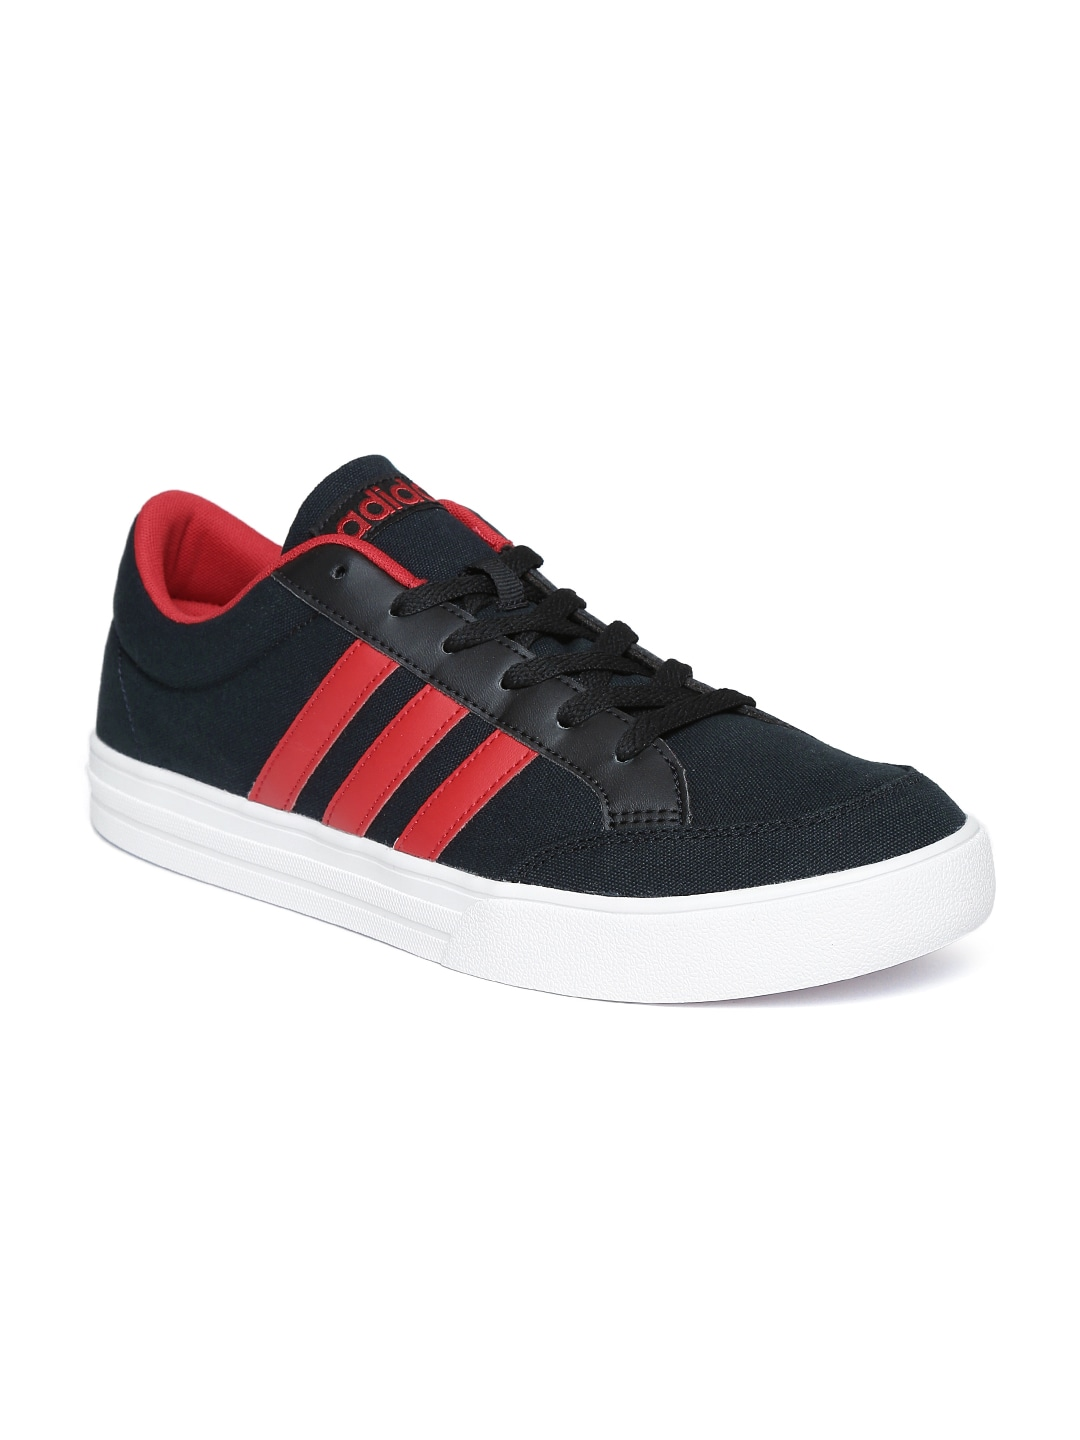 57198904a9f8 australia original new arrival 2018 adidas neo label questar drive mens skateboarding  shoes sneakers 6e4bd 184f6  where to buy adidas neo shoes buy adidas ...